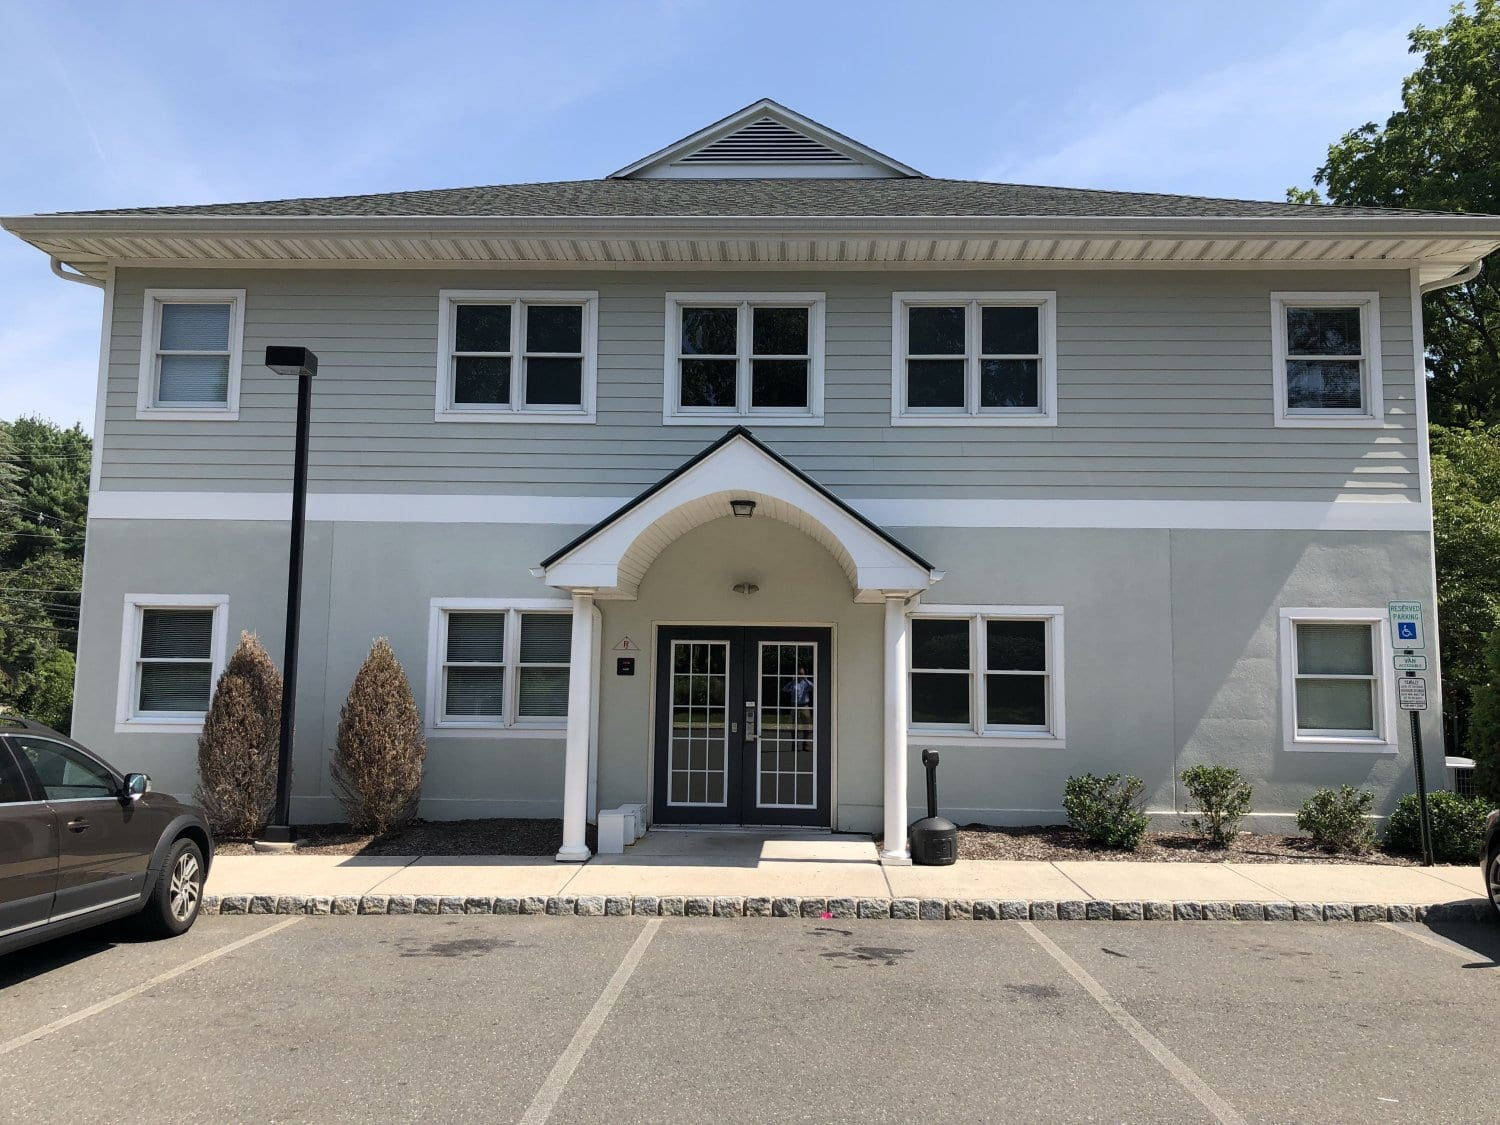 An image of the entrance to our physical therapy clinic in Montville, New Jersey.